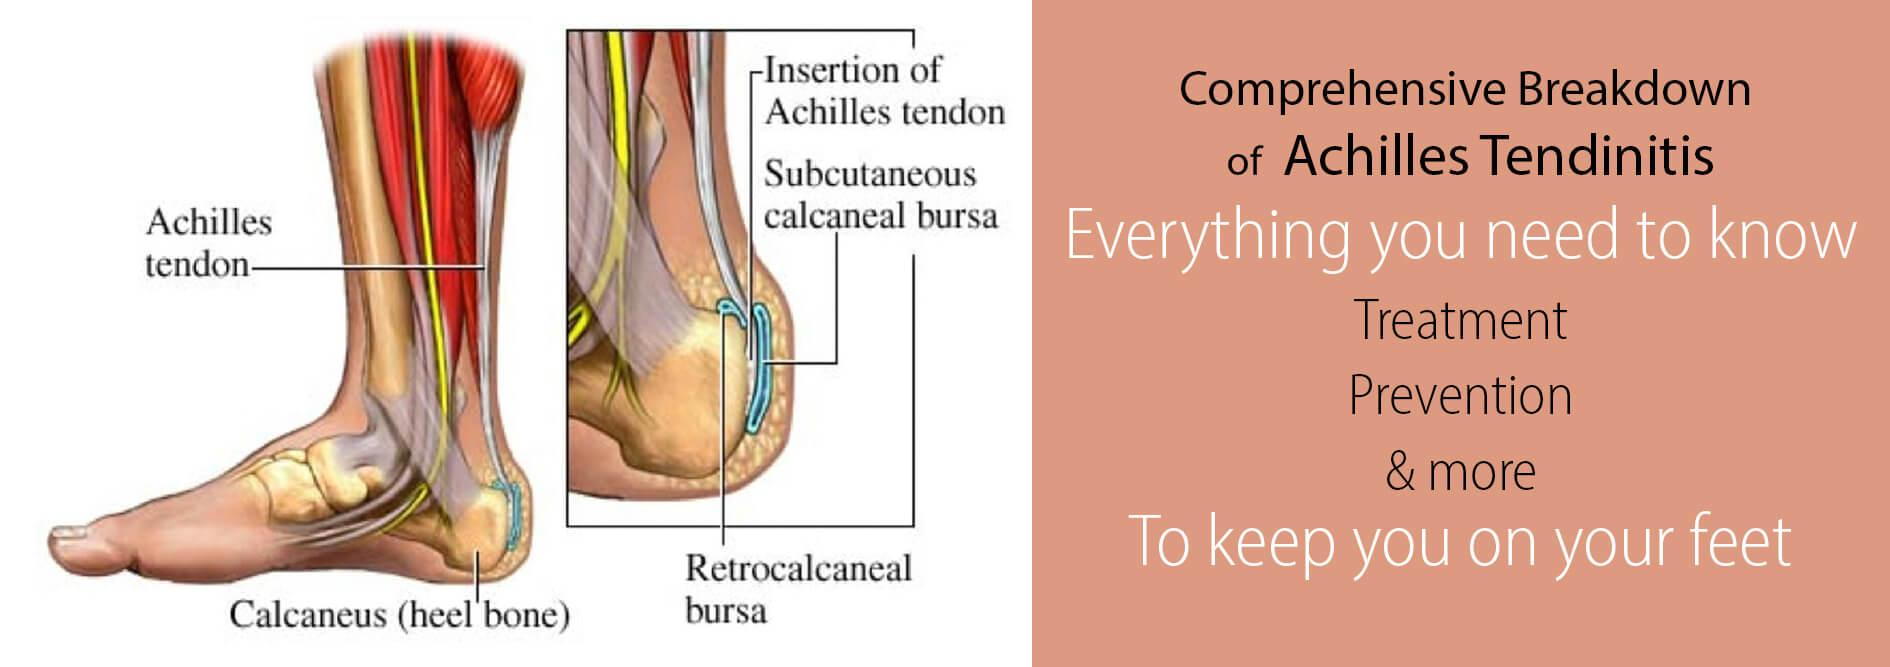 Achilles Tendonitis - The Complete Guide to Causes & Treatments